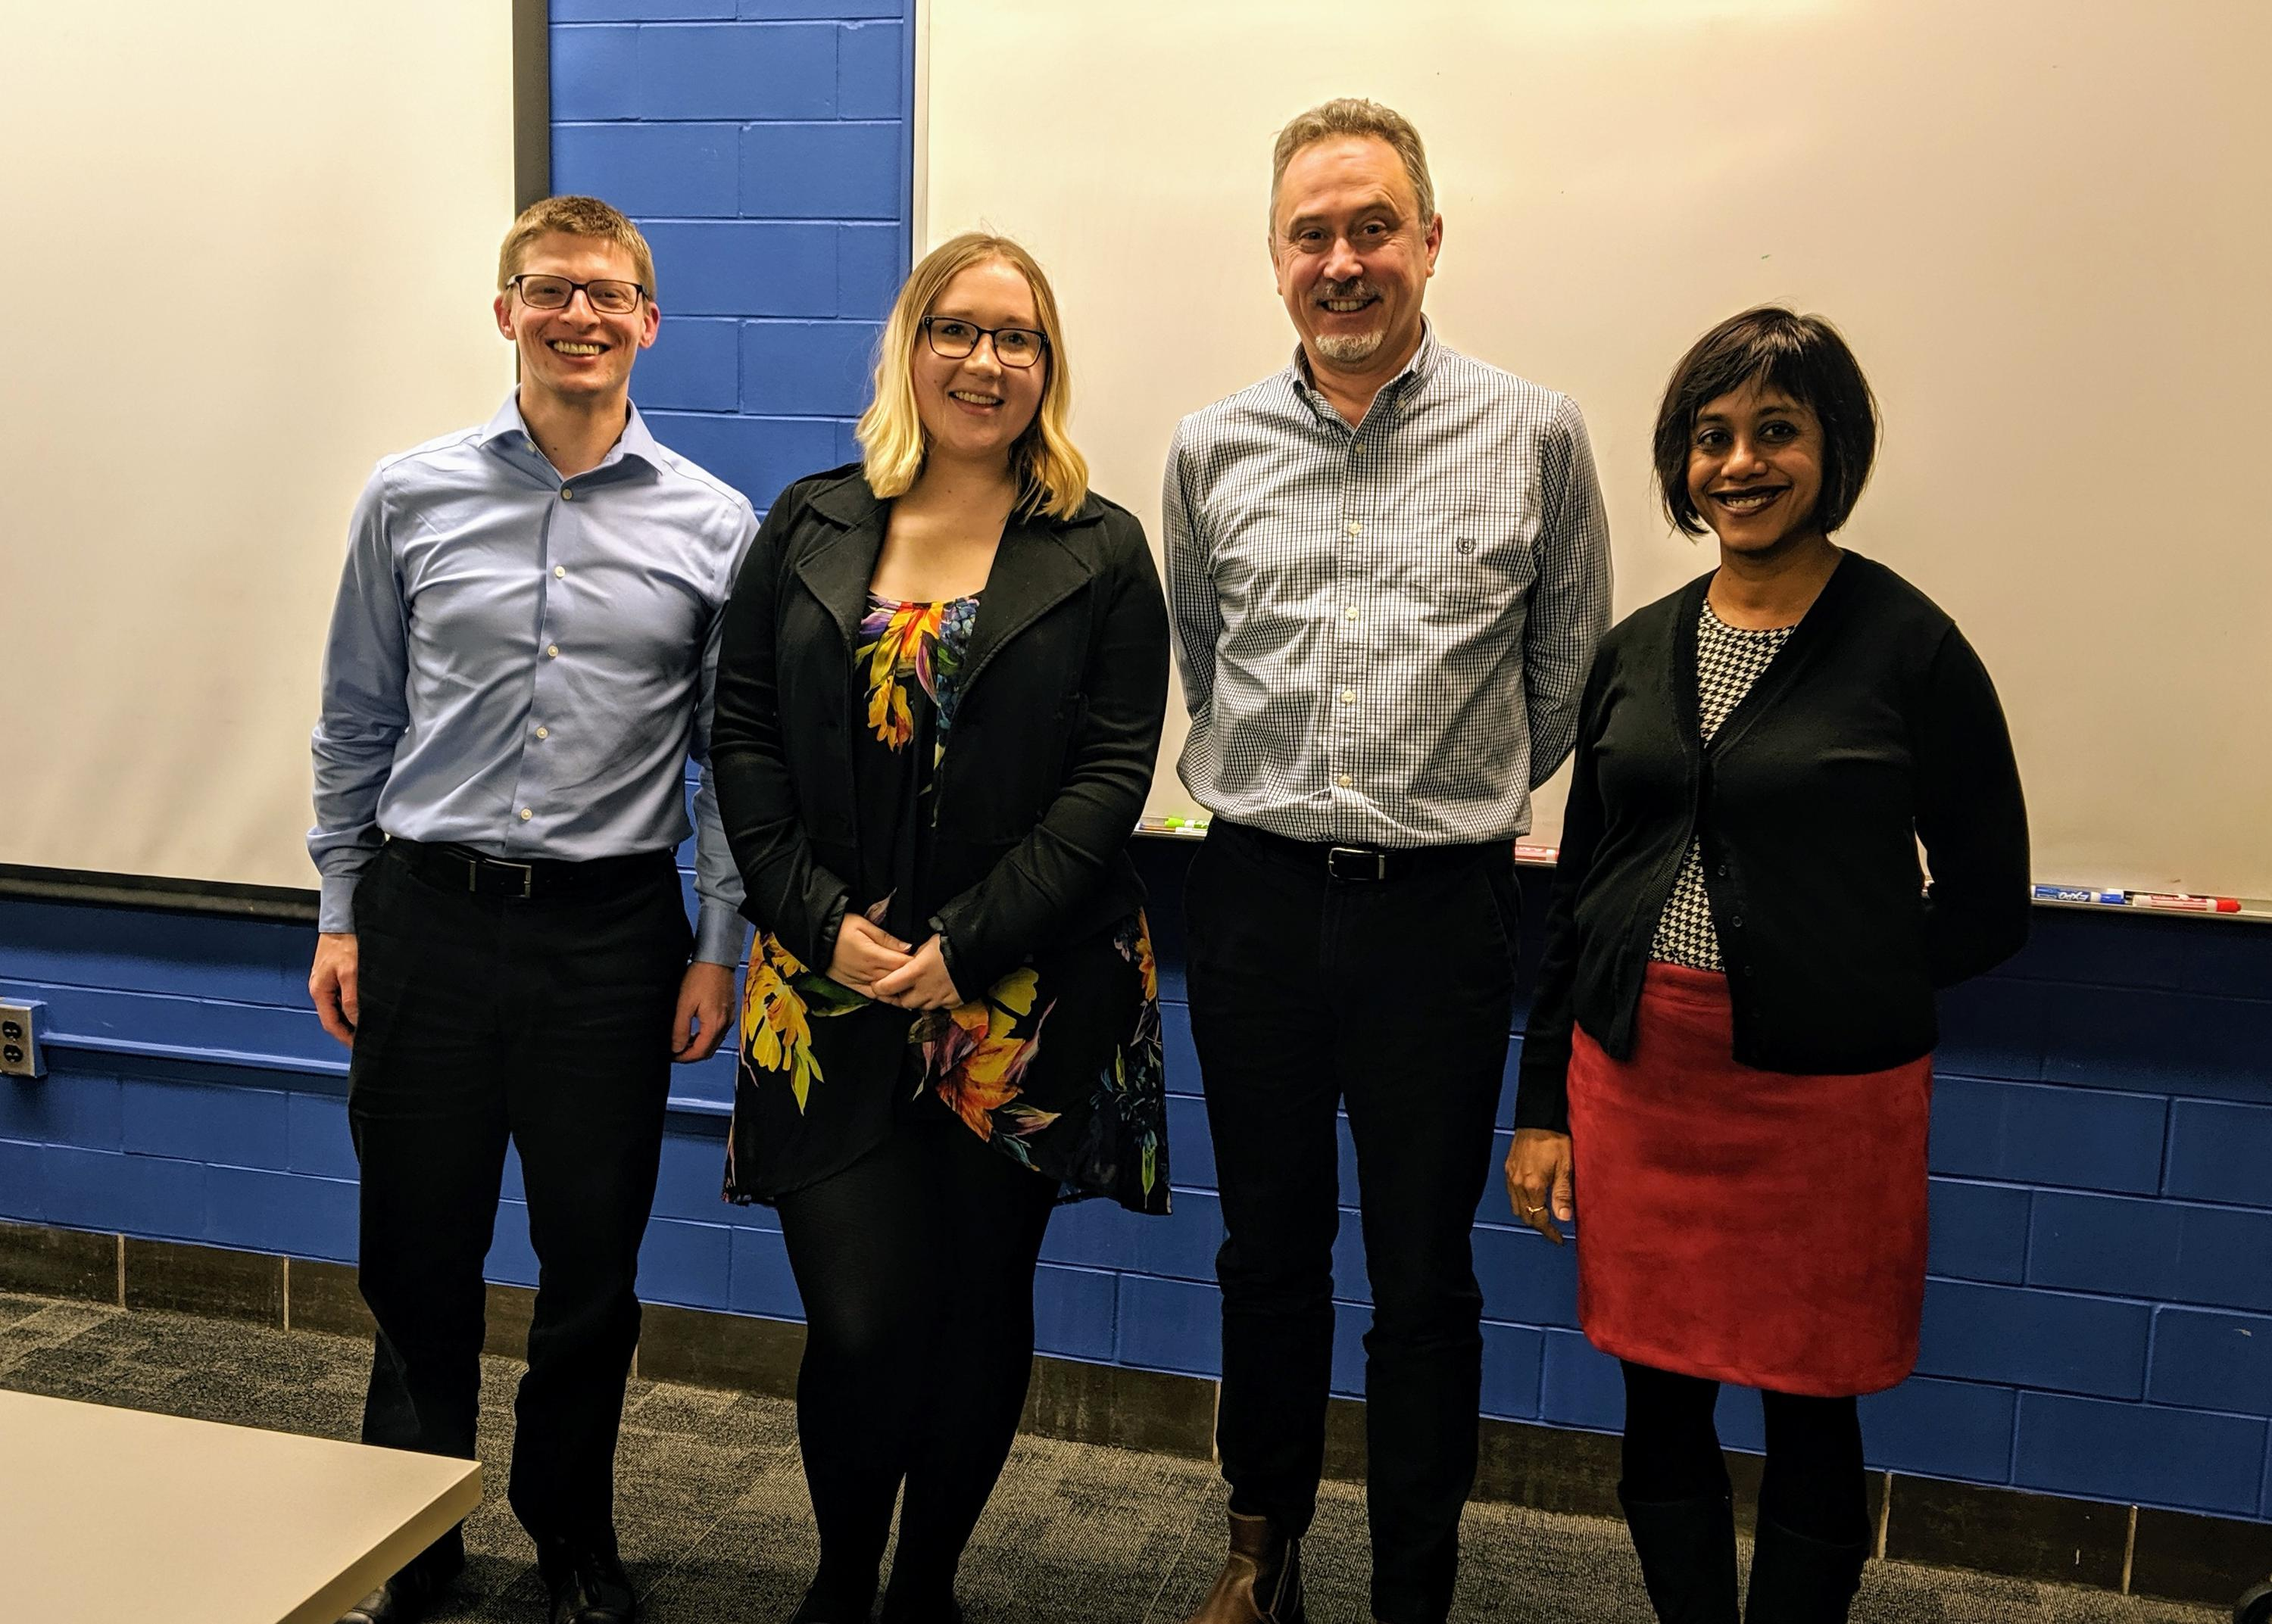 Tamara Van Staden and her MSc defence examination committee